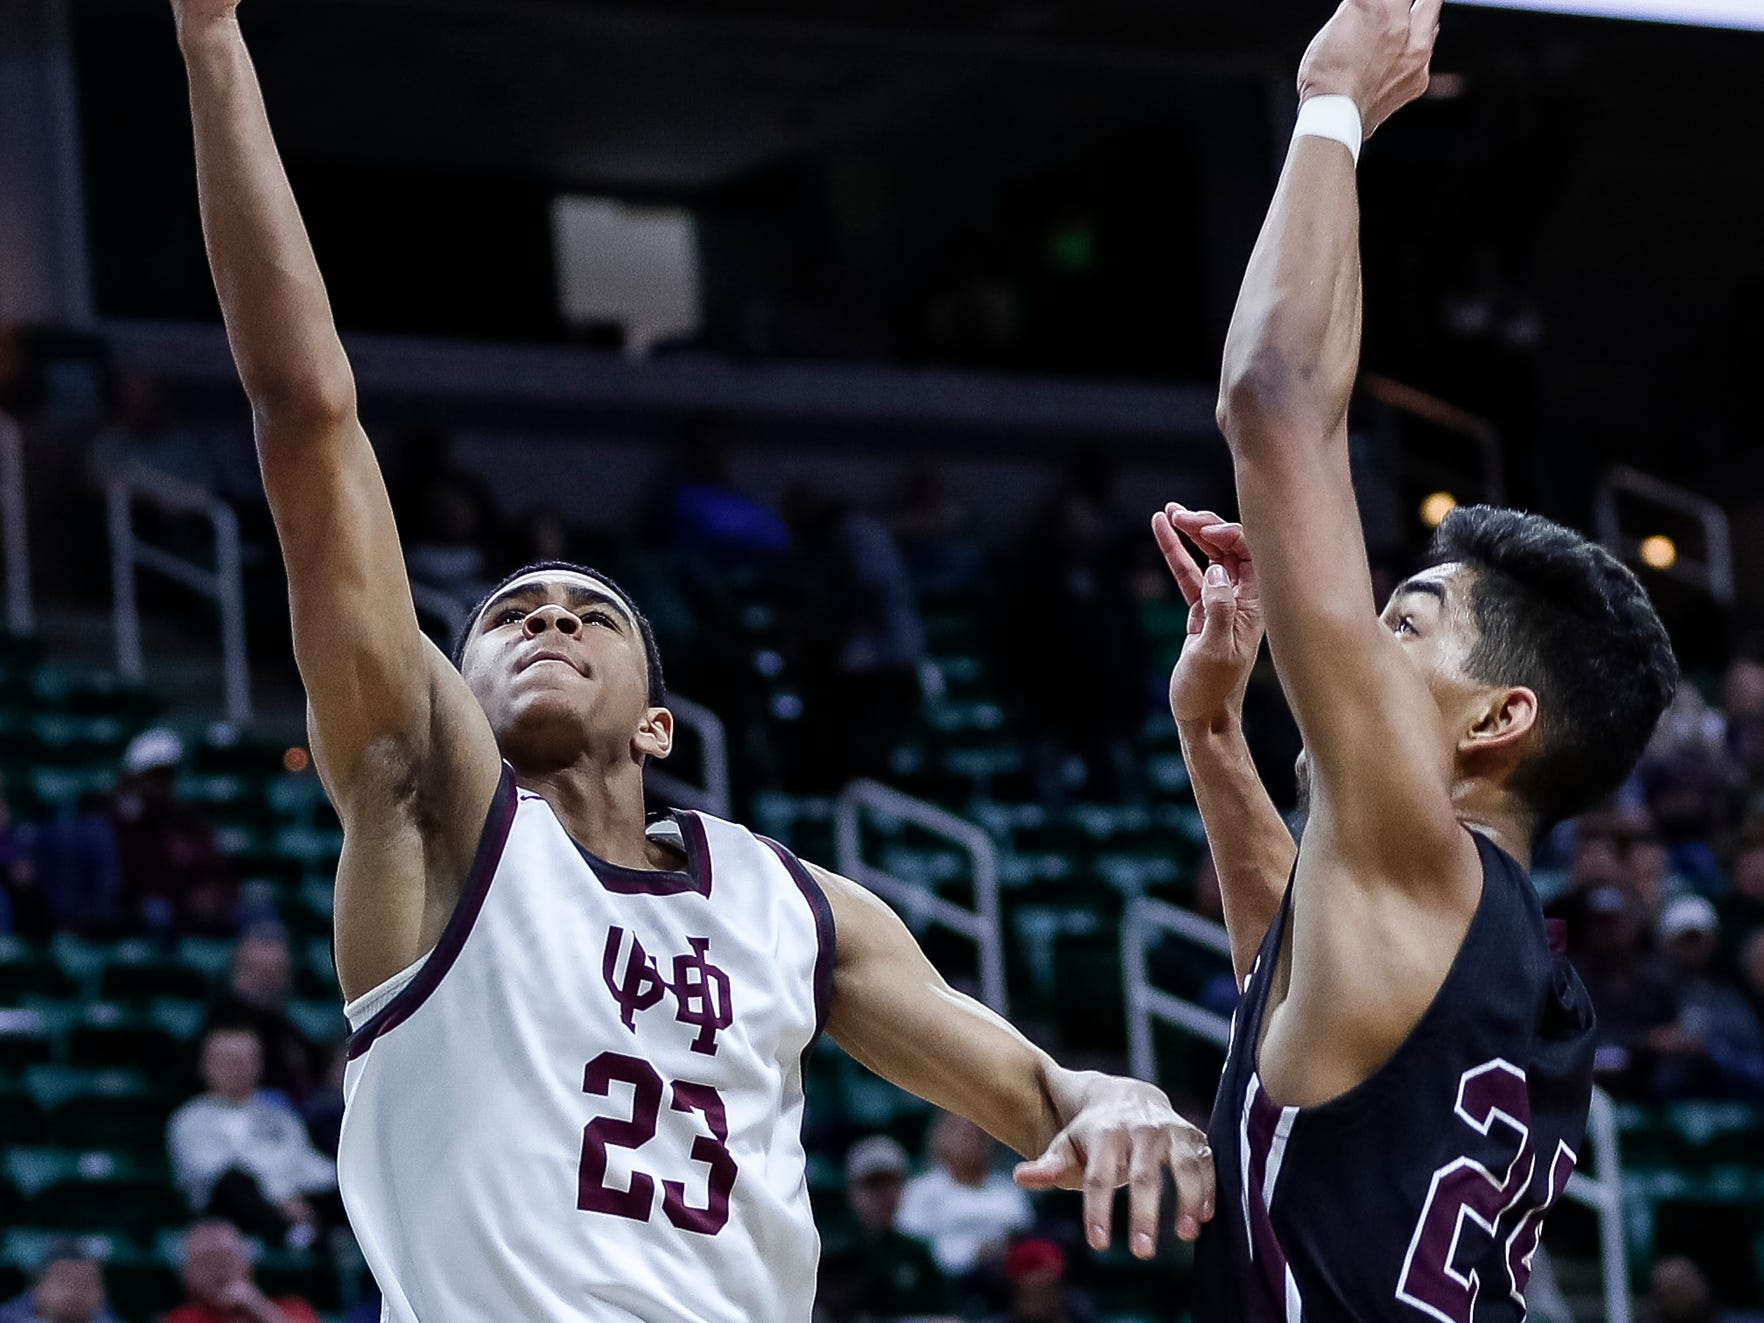 U-D Jesuit's JonMarcus Roland (23) makes a layup against Okemos' Evan Thomas (24) during the second half of MHSAA Division 1 semifinal at the Breslin Center in East Lansing, Friday, March 15, 2019.